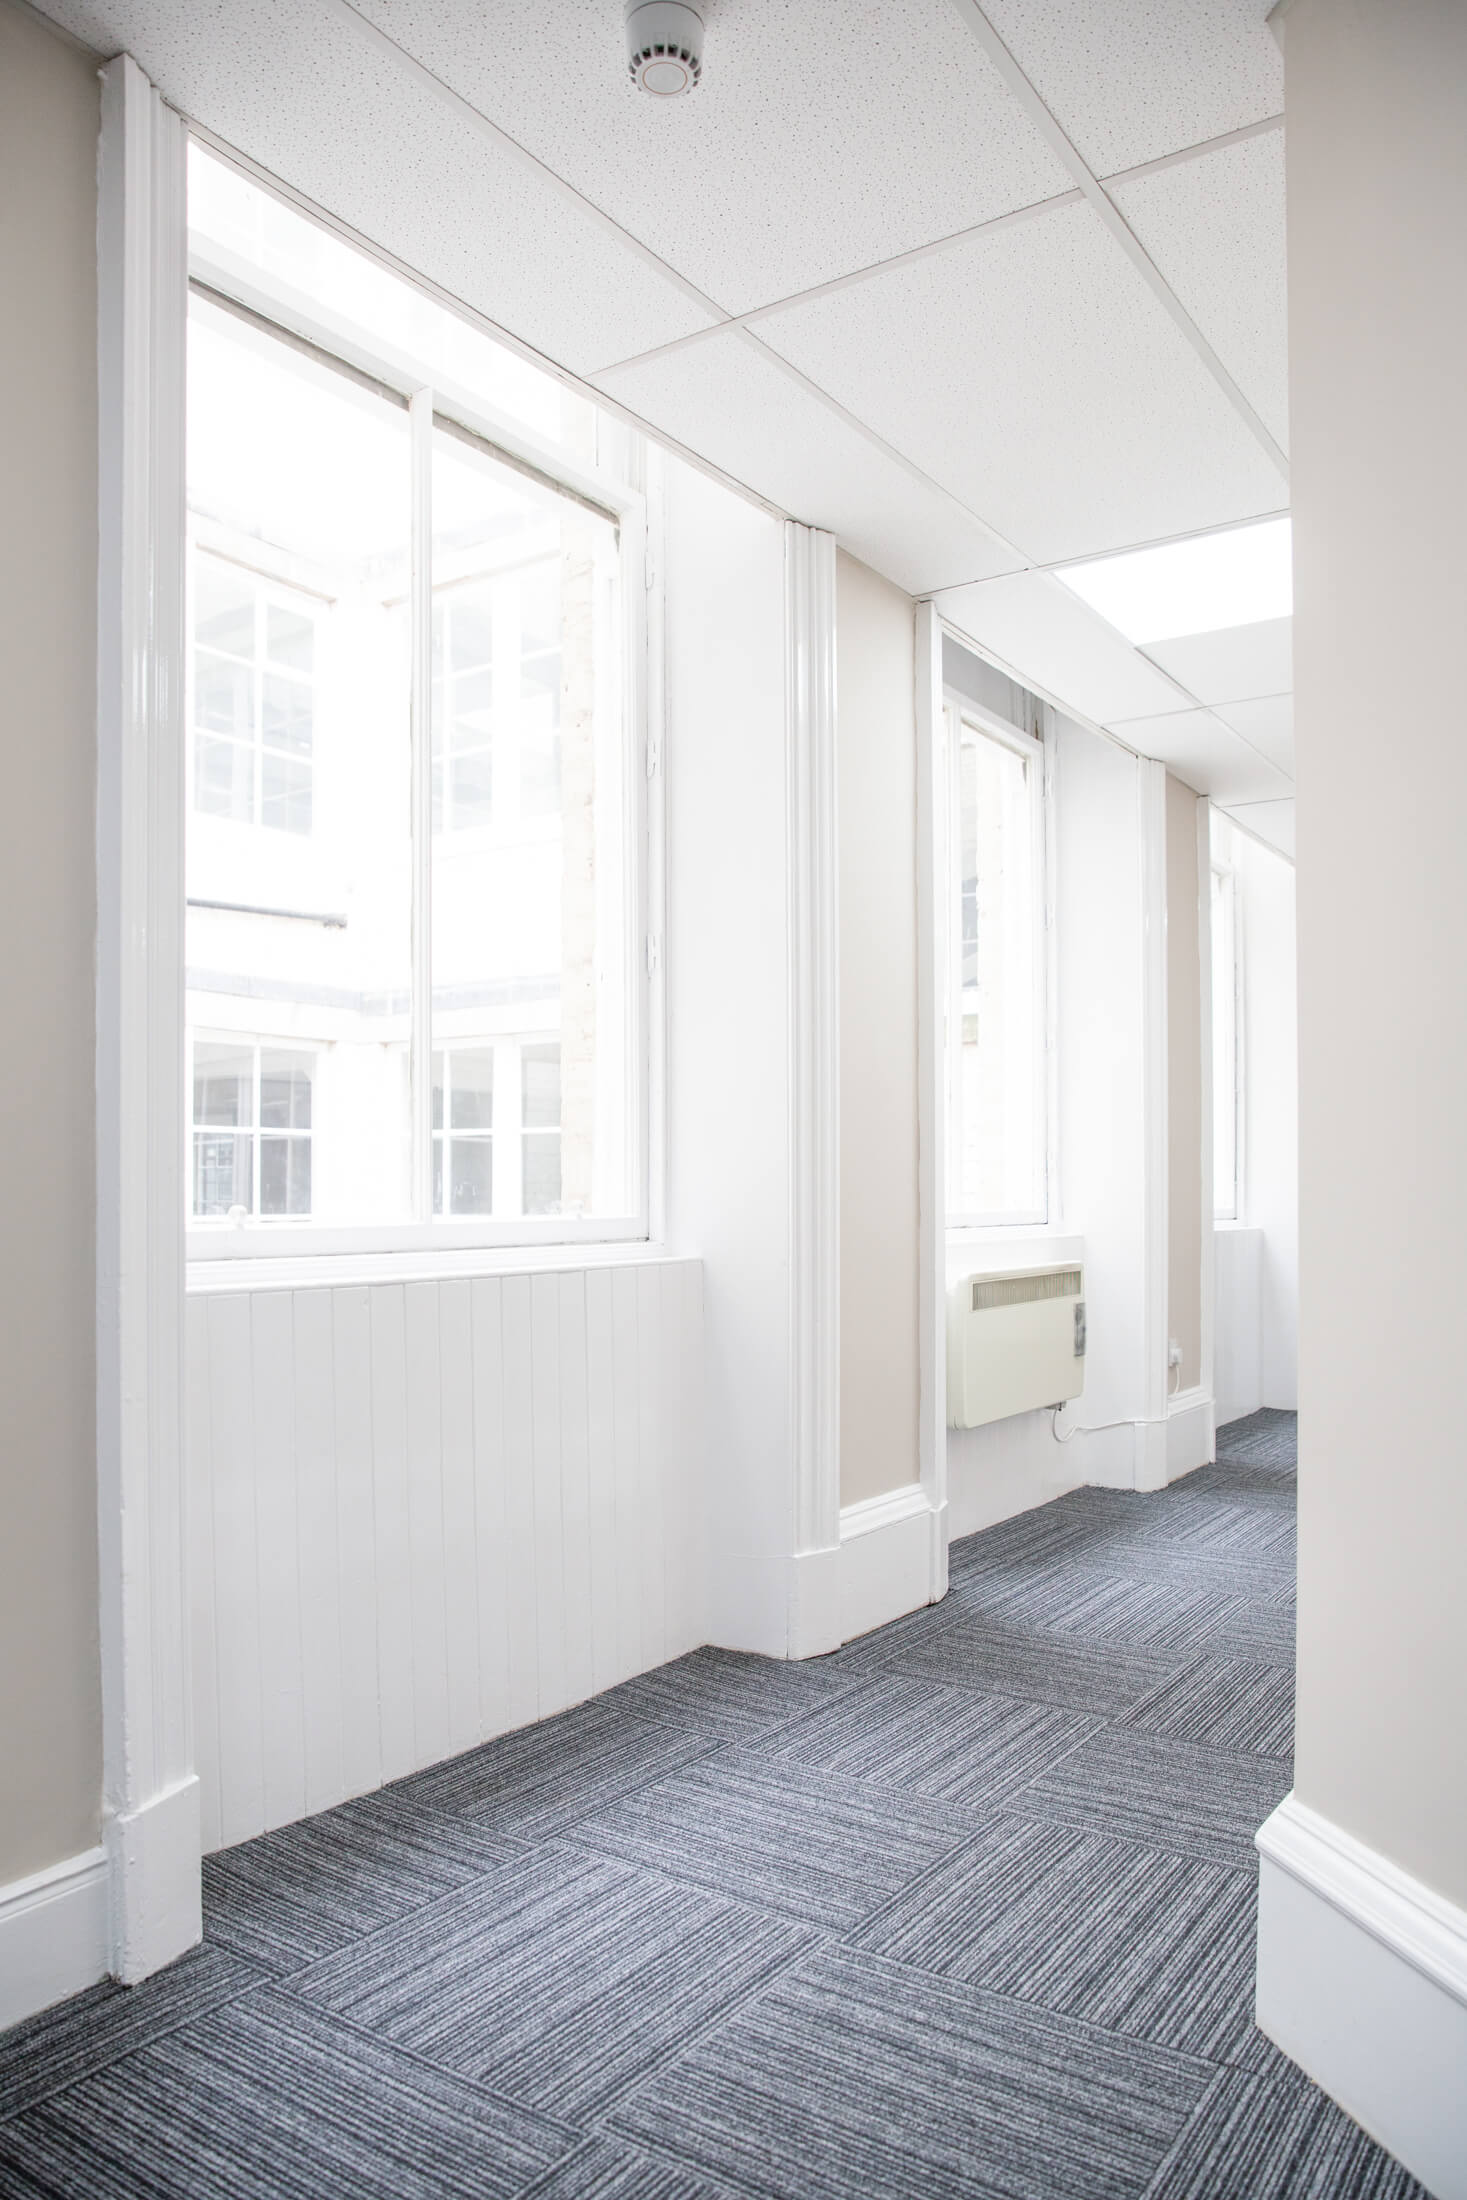 Renovated corridor in an office building in Glasgow